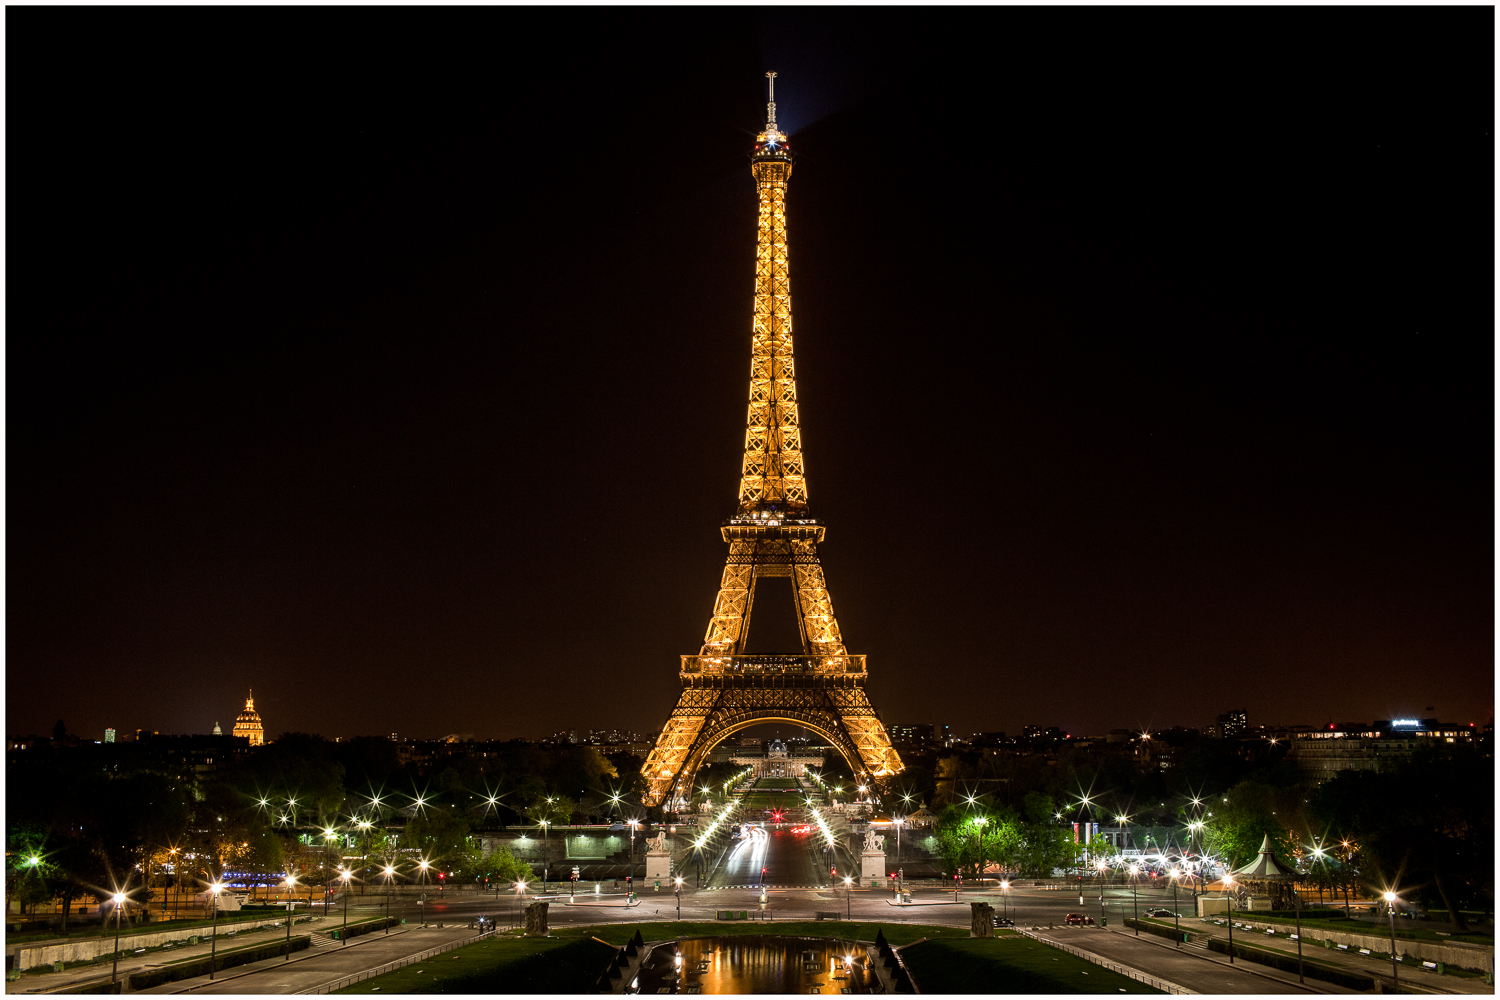 Eiffel Tower at Night.jpg